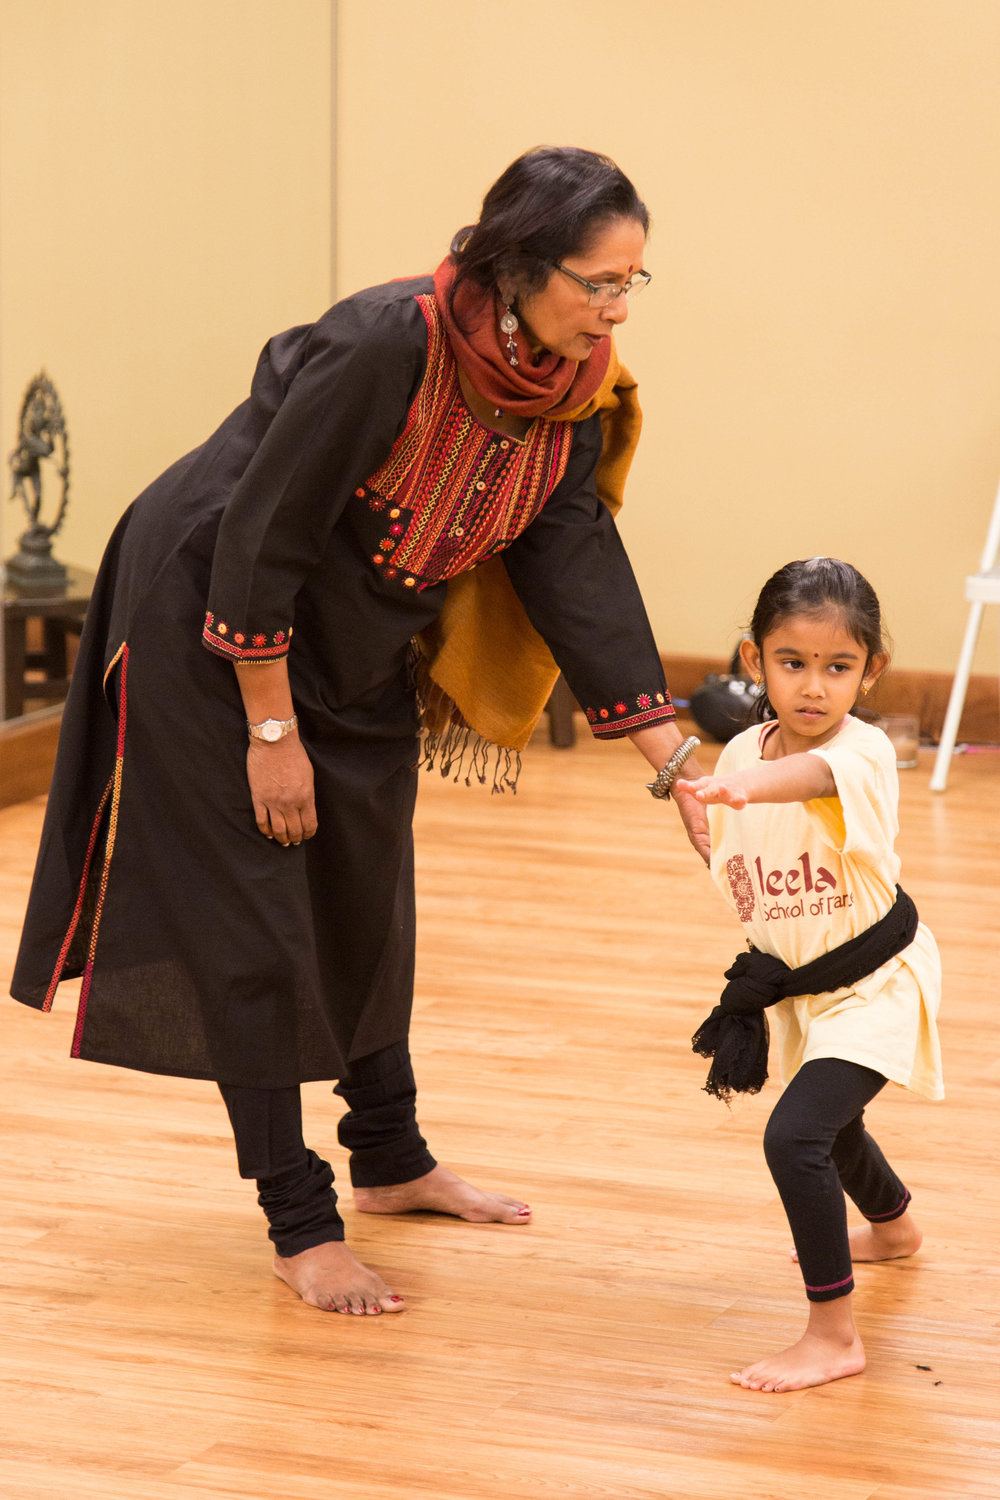 Asha Bala adjusts form of young student.